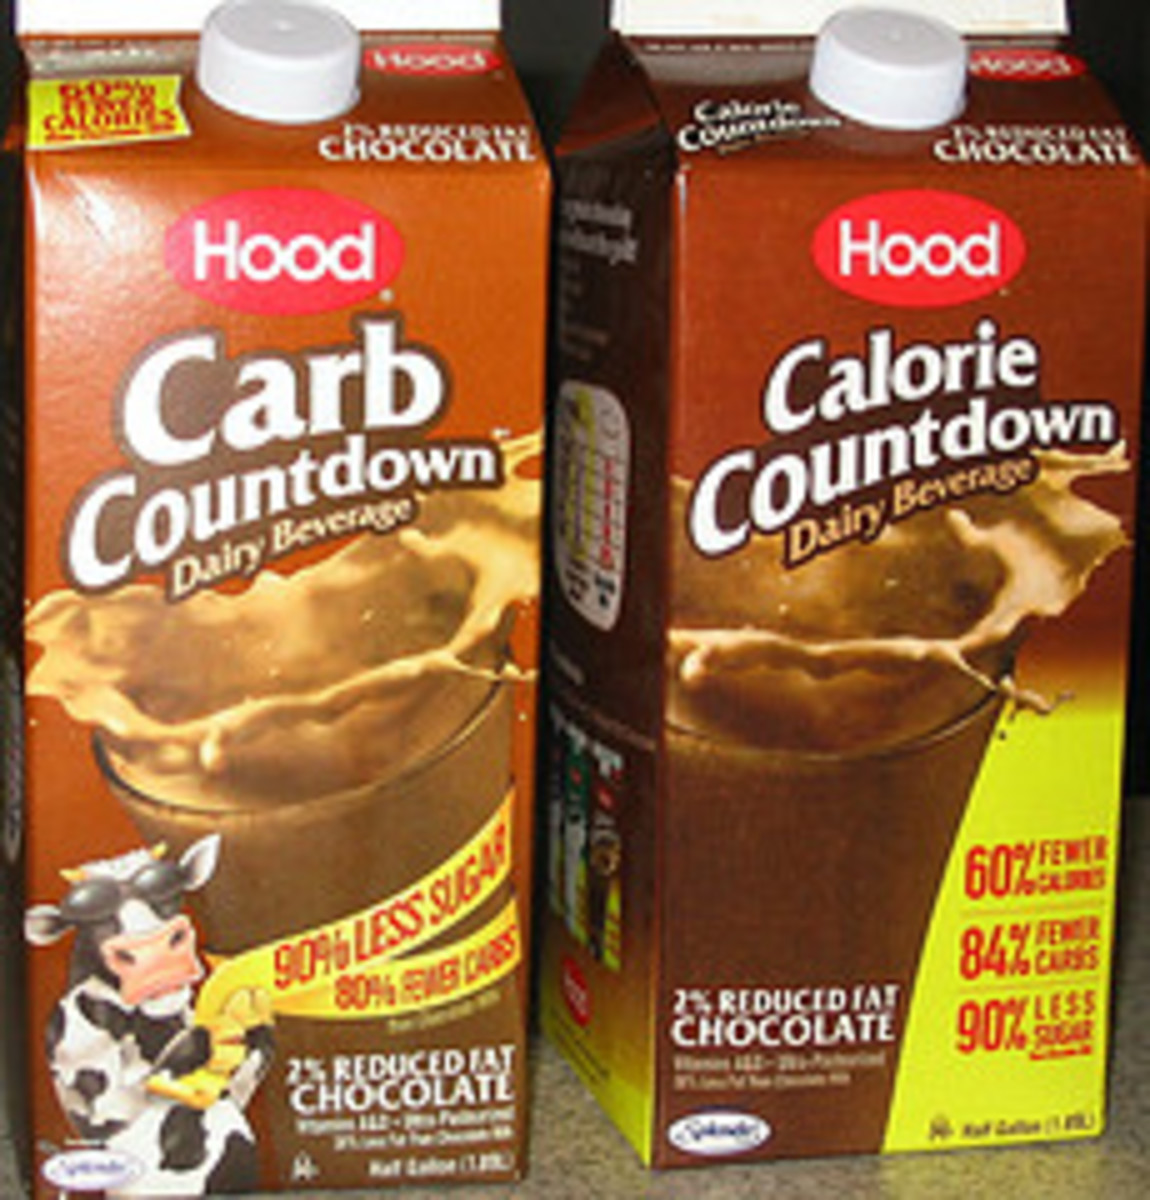 Product Review: Hood Low Carb Low Calorie Chocolate Milk